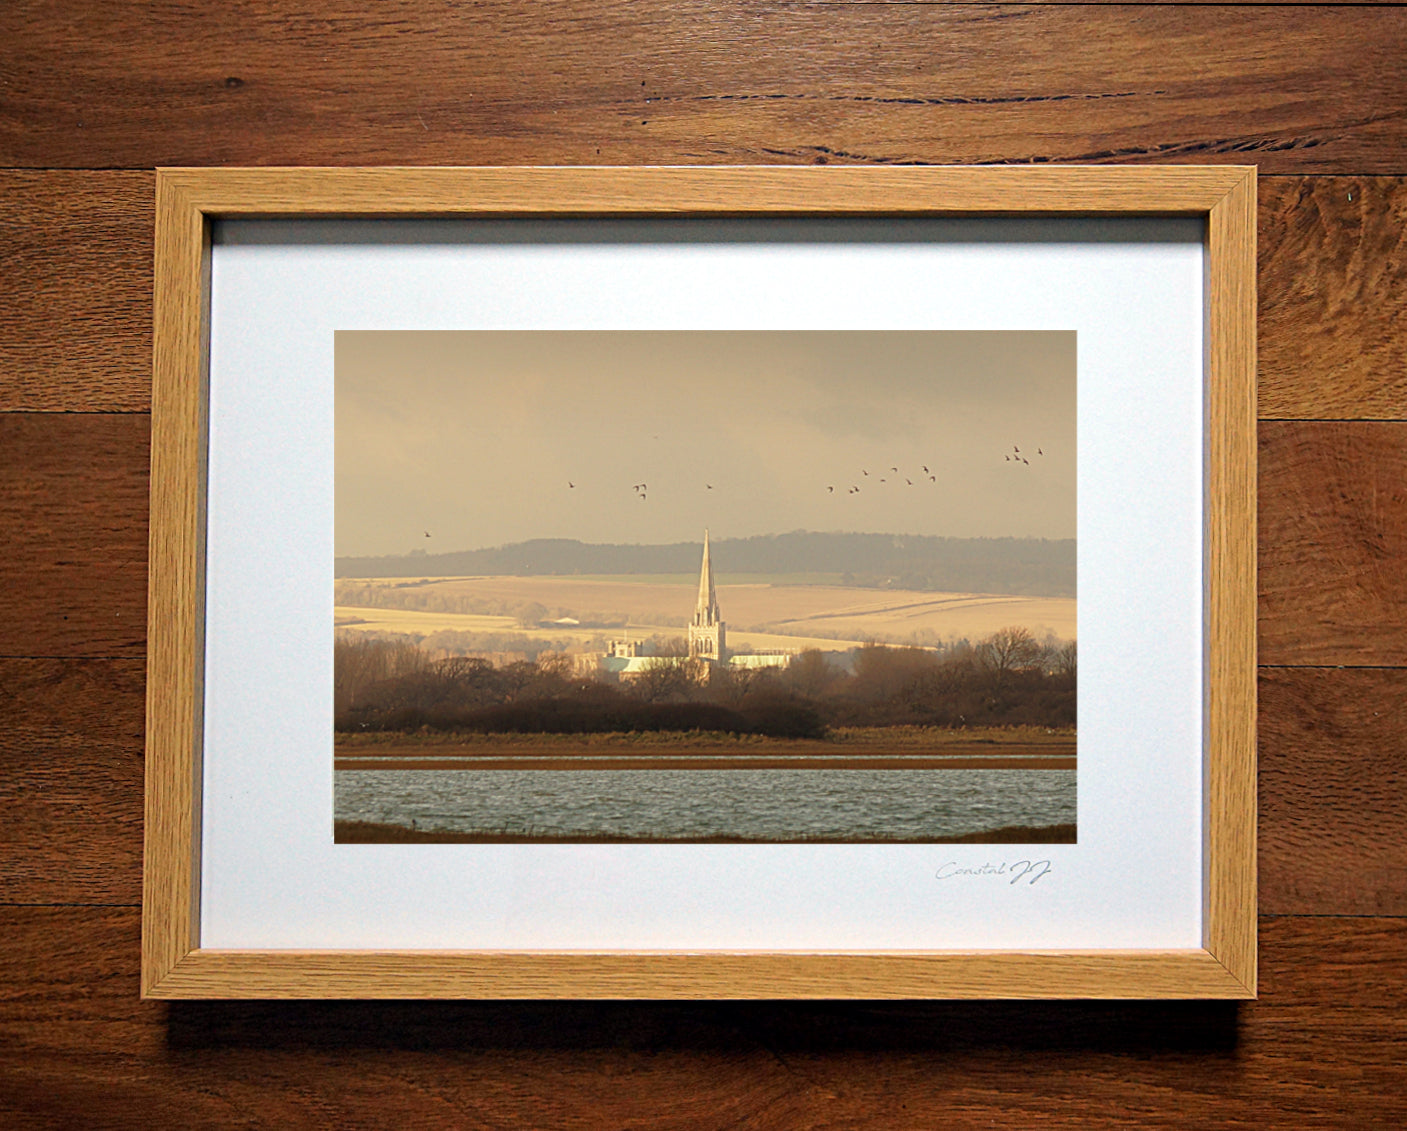 'The Timeless View Across the Ages' Framed Print - £40